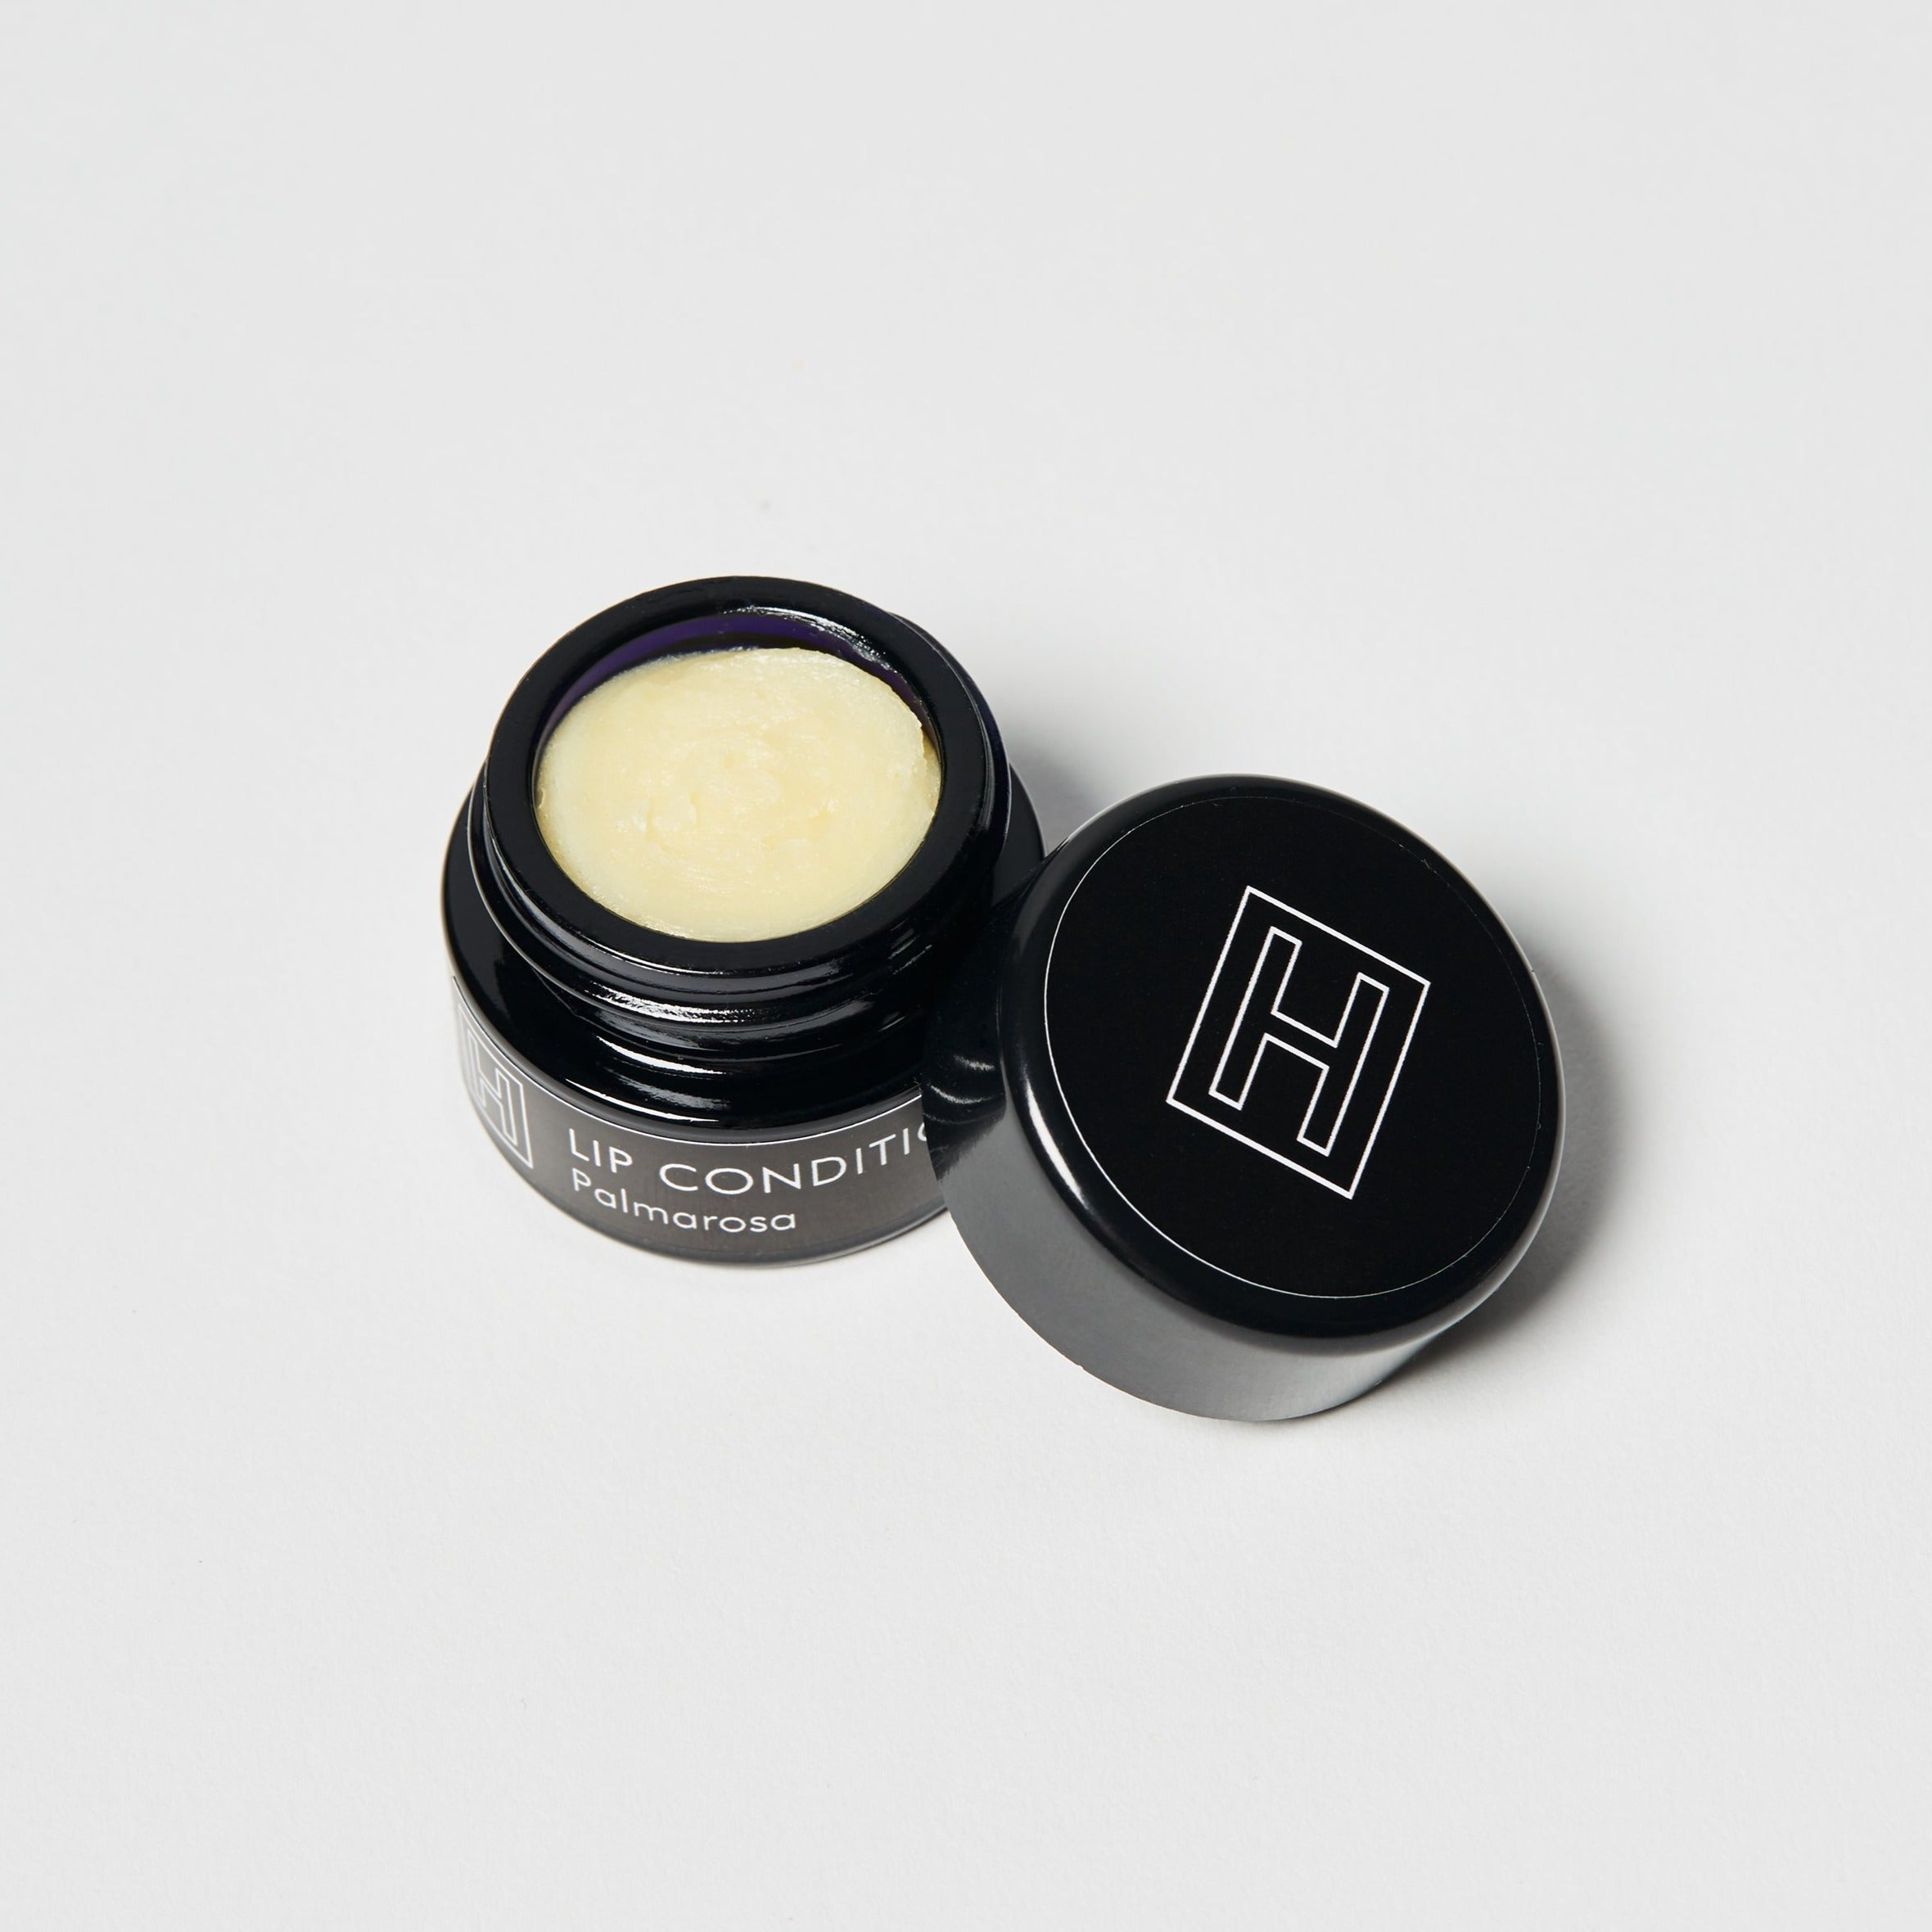 H Is For Love Palmarosa Lip Conditioner